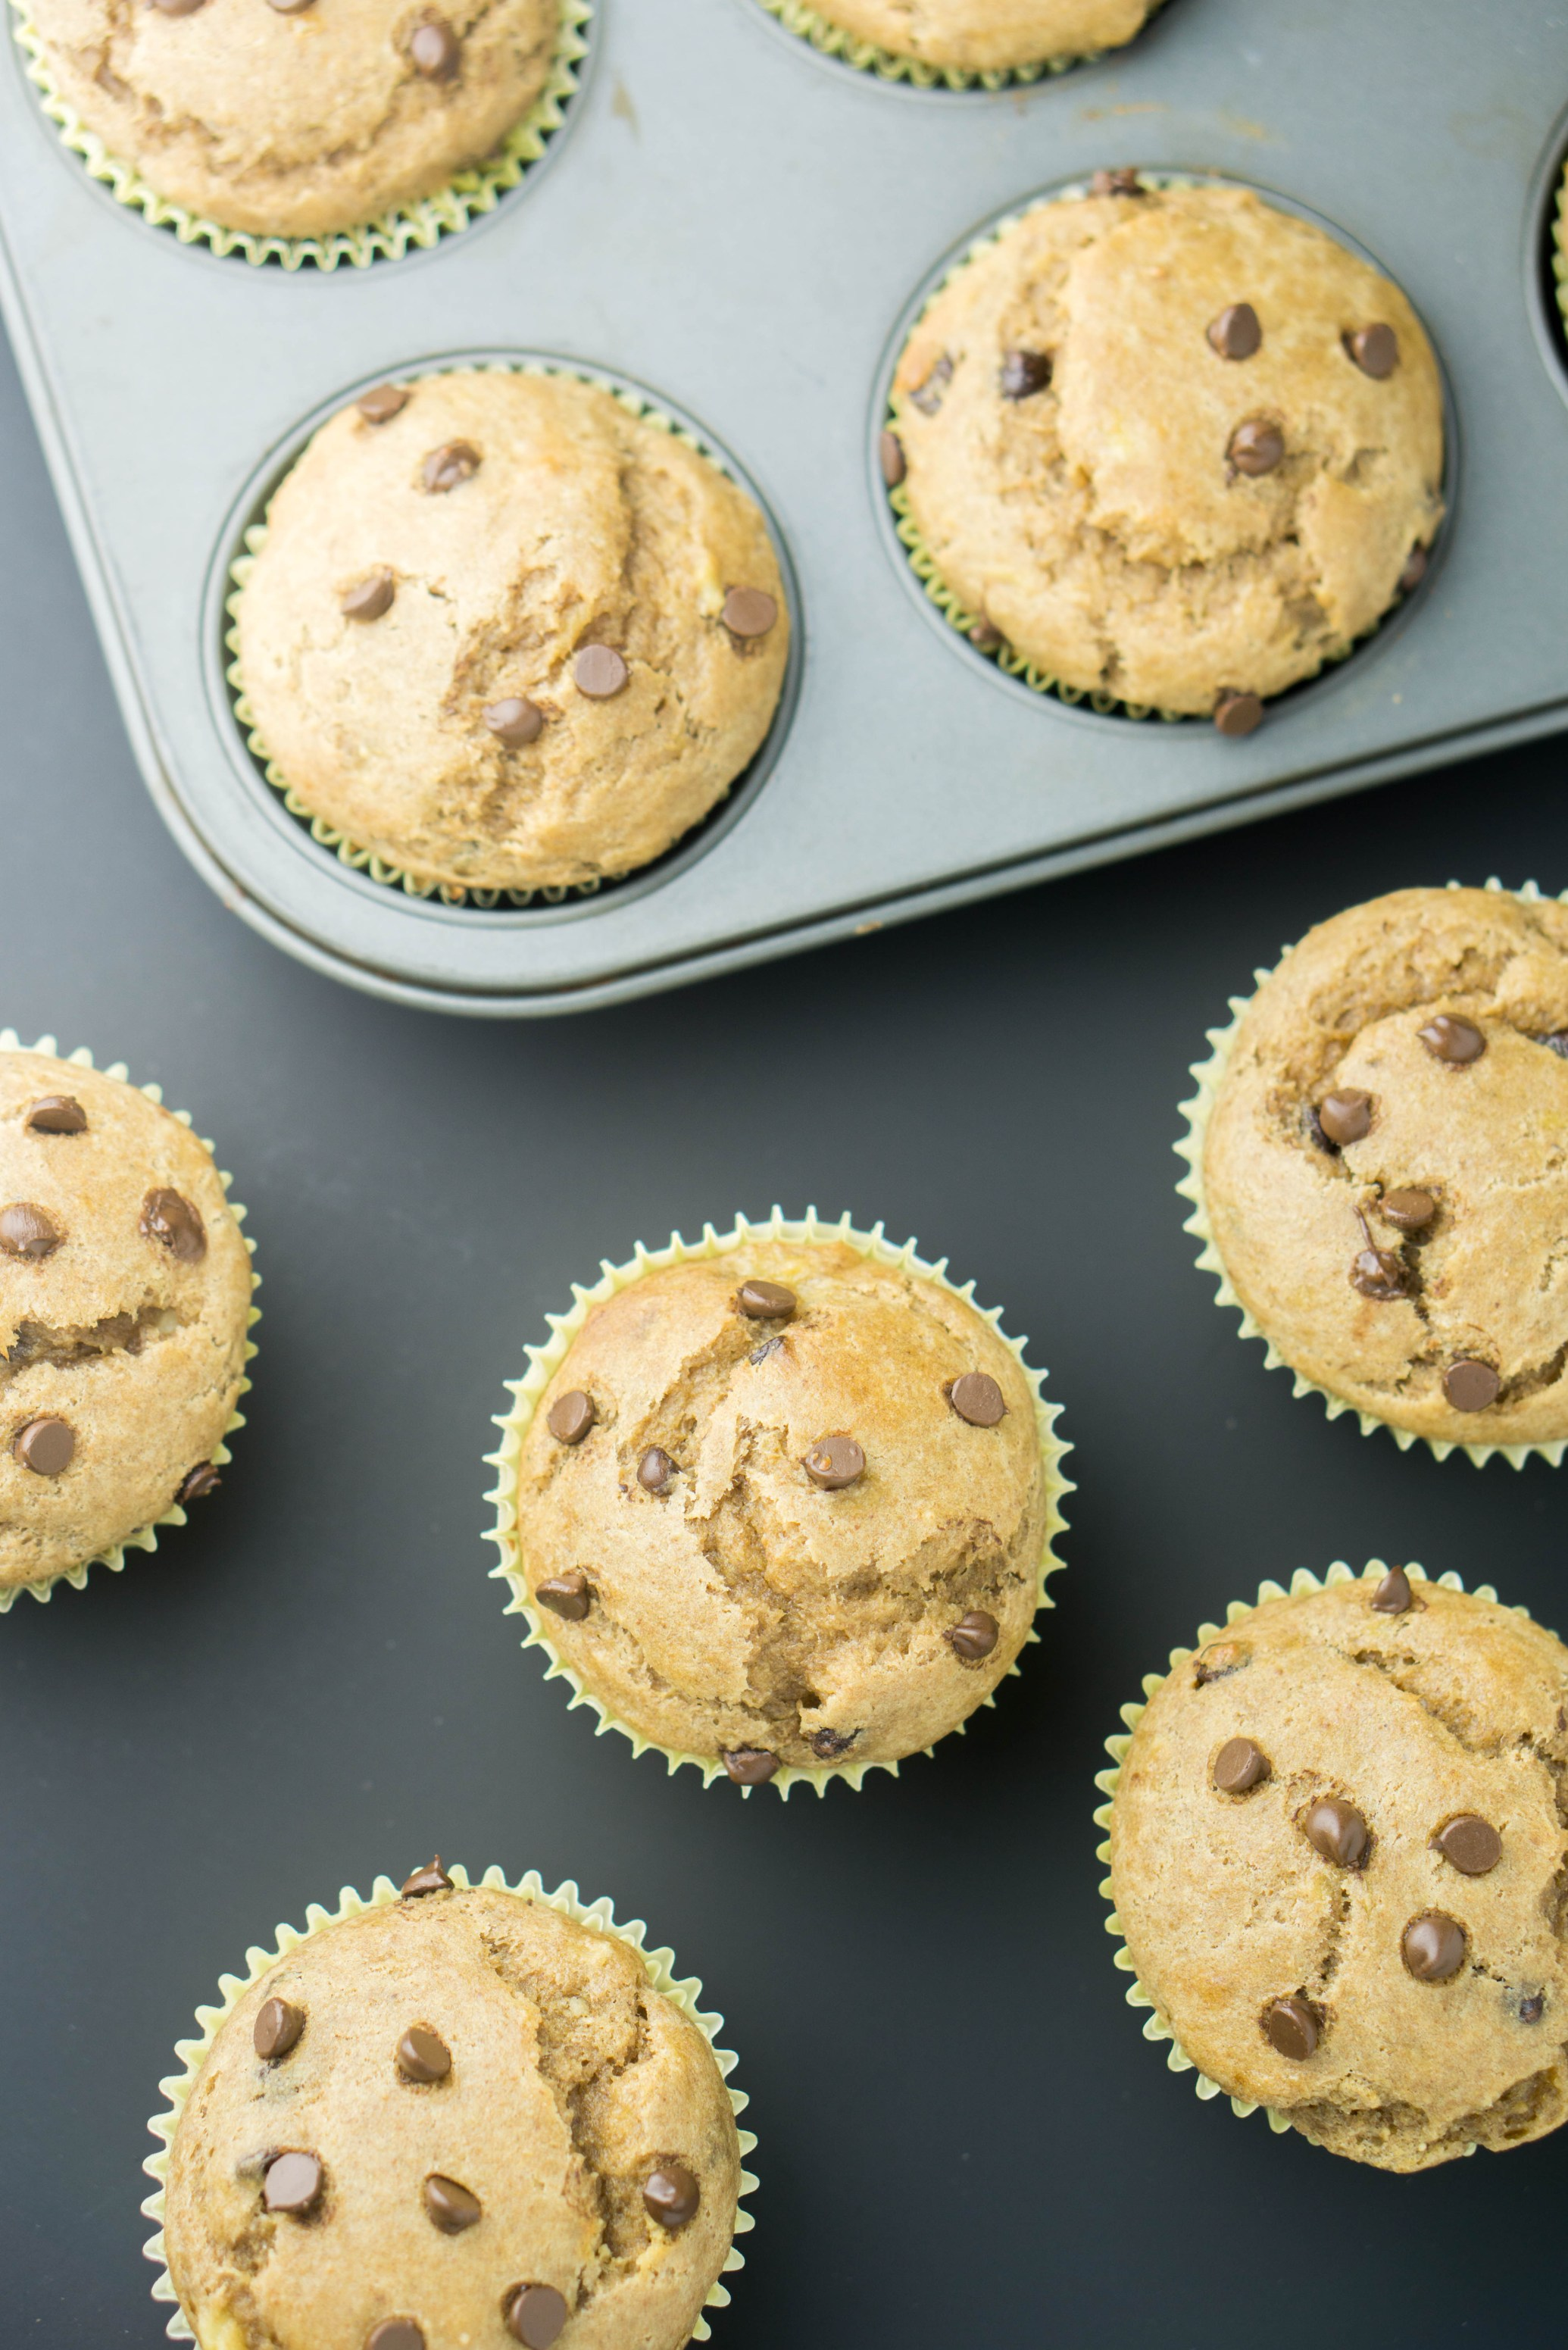 1-BOWL Peanut Butter Banana Chocolate Chip MUFFINS! super moist, sweet and nutritious! #healthy #banana #peanutbutter #chocolatechip #muffins #wholewheat #recipe | www.wakeuptowaffles.com